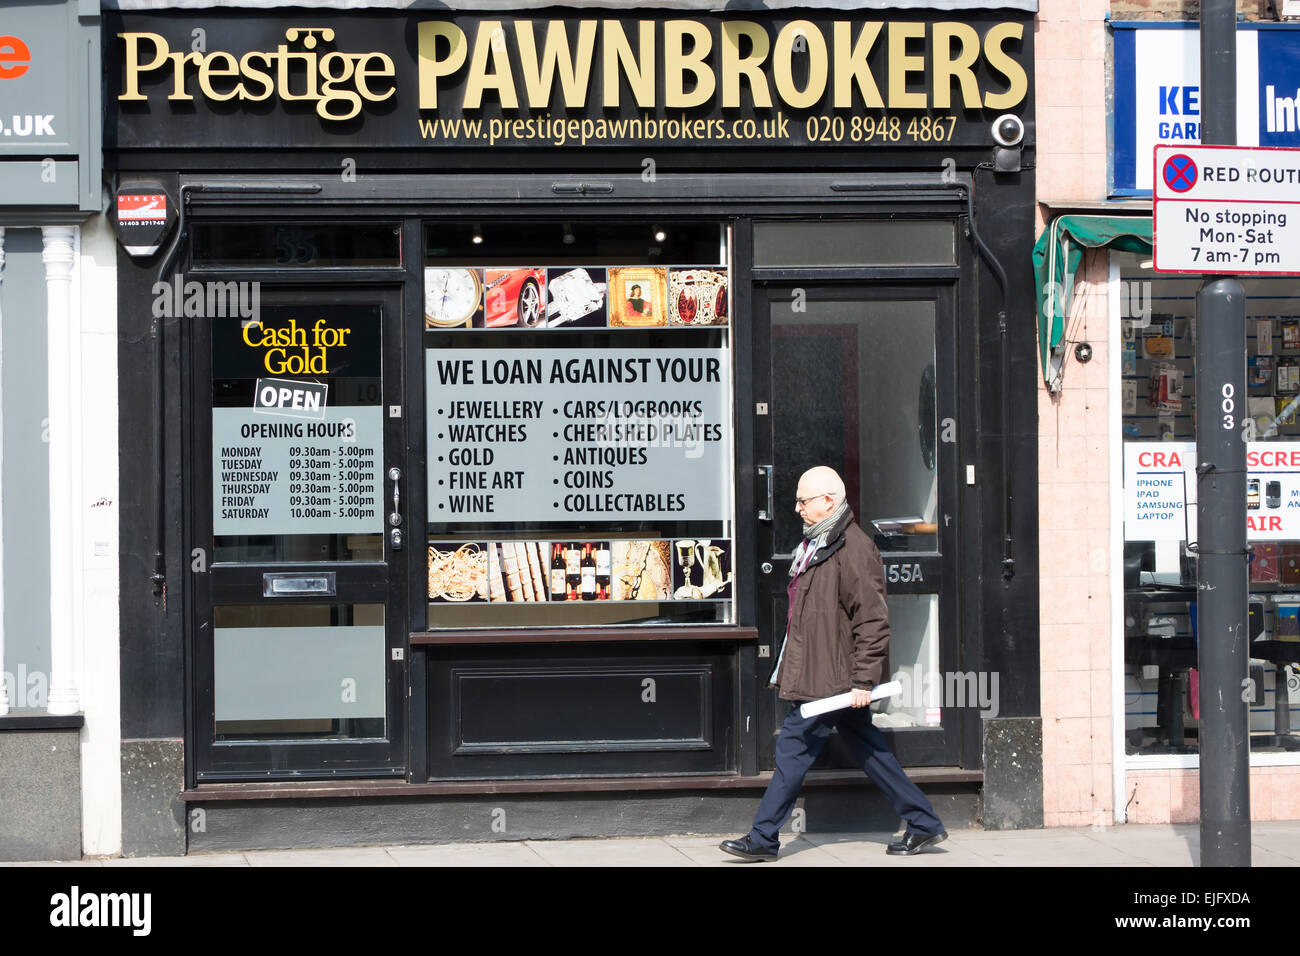 exterior of a branch of prestige pawnbrokers, richmond upon thames, surrey, england - Stock Image